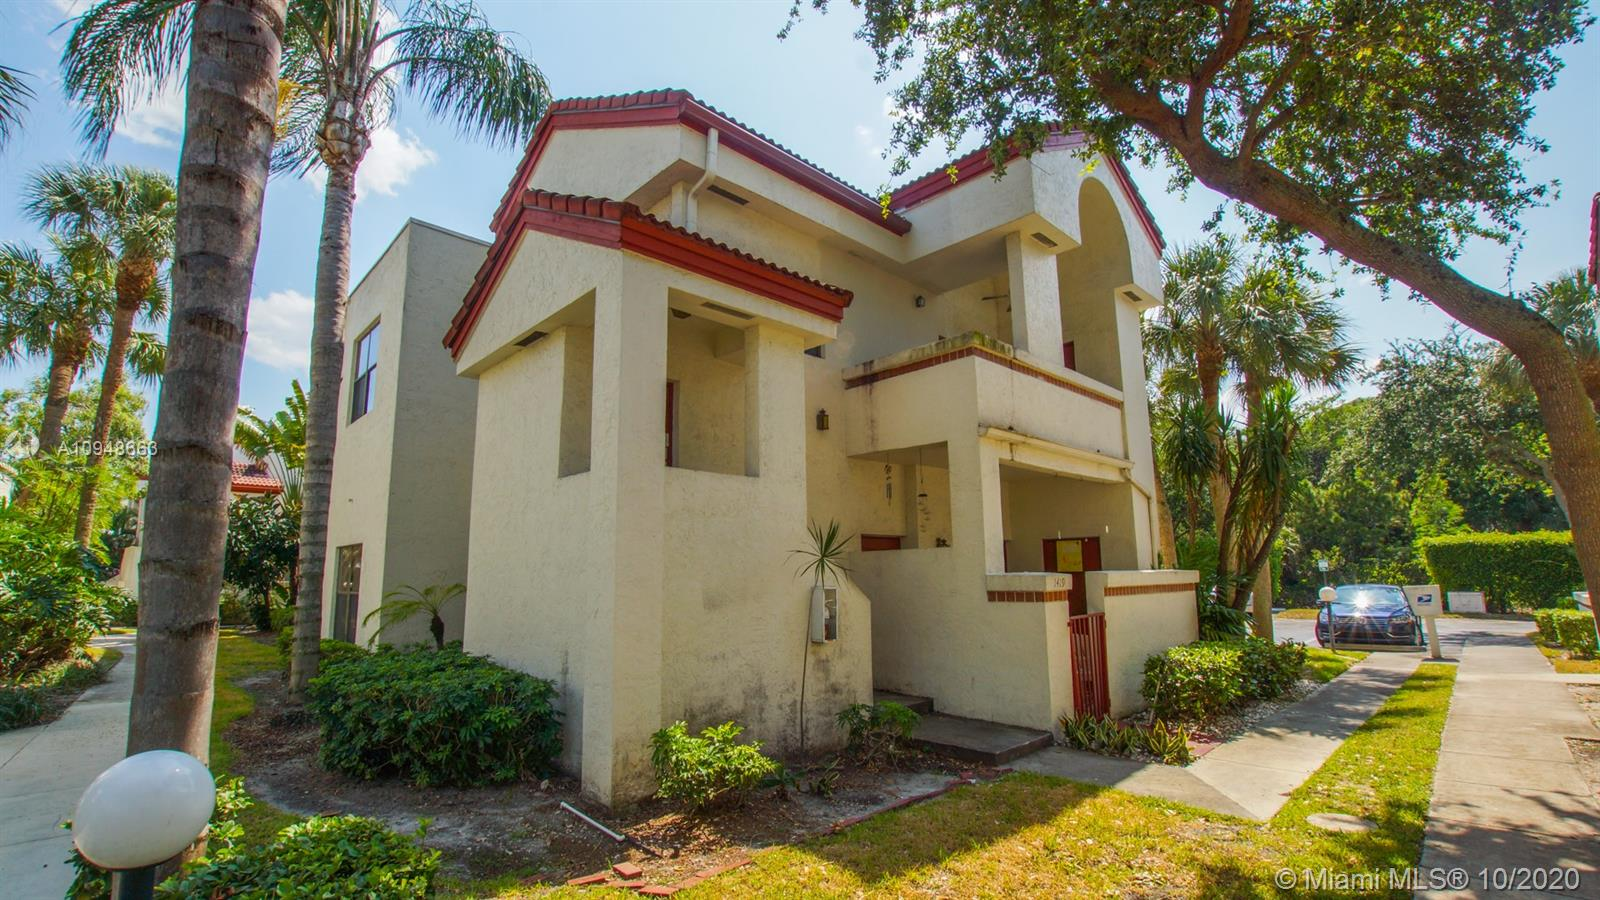 PERFER INVESTORS .GREAT CONDITION.CURRENTLY RENTED AT 1900.00 PER MONTH 8.5 RETURN ON INVESTMENT.